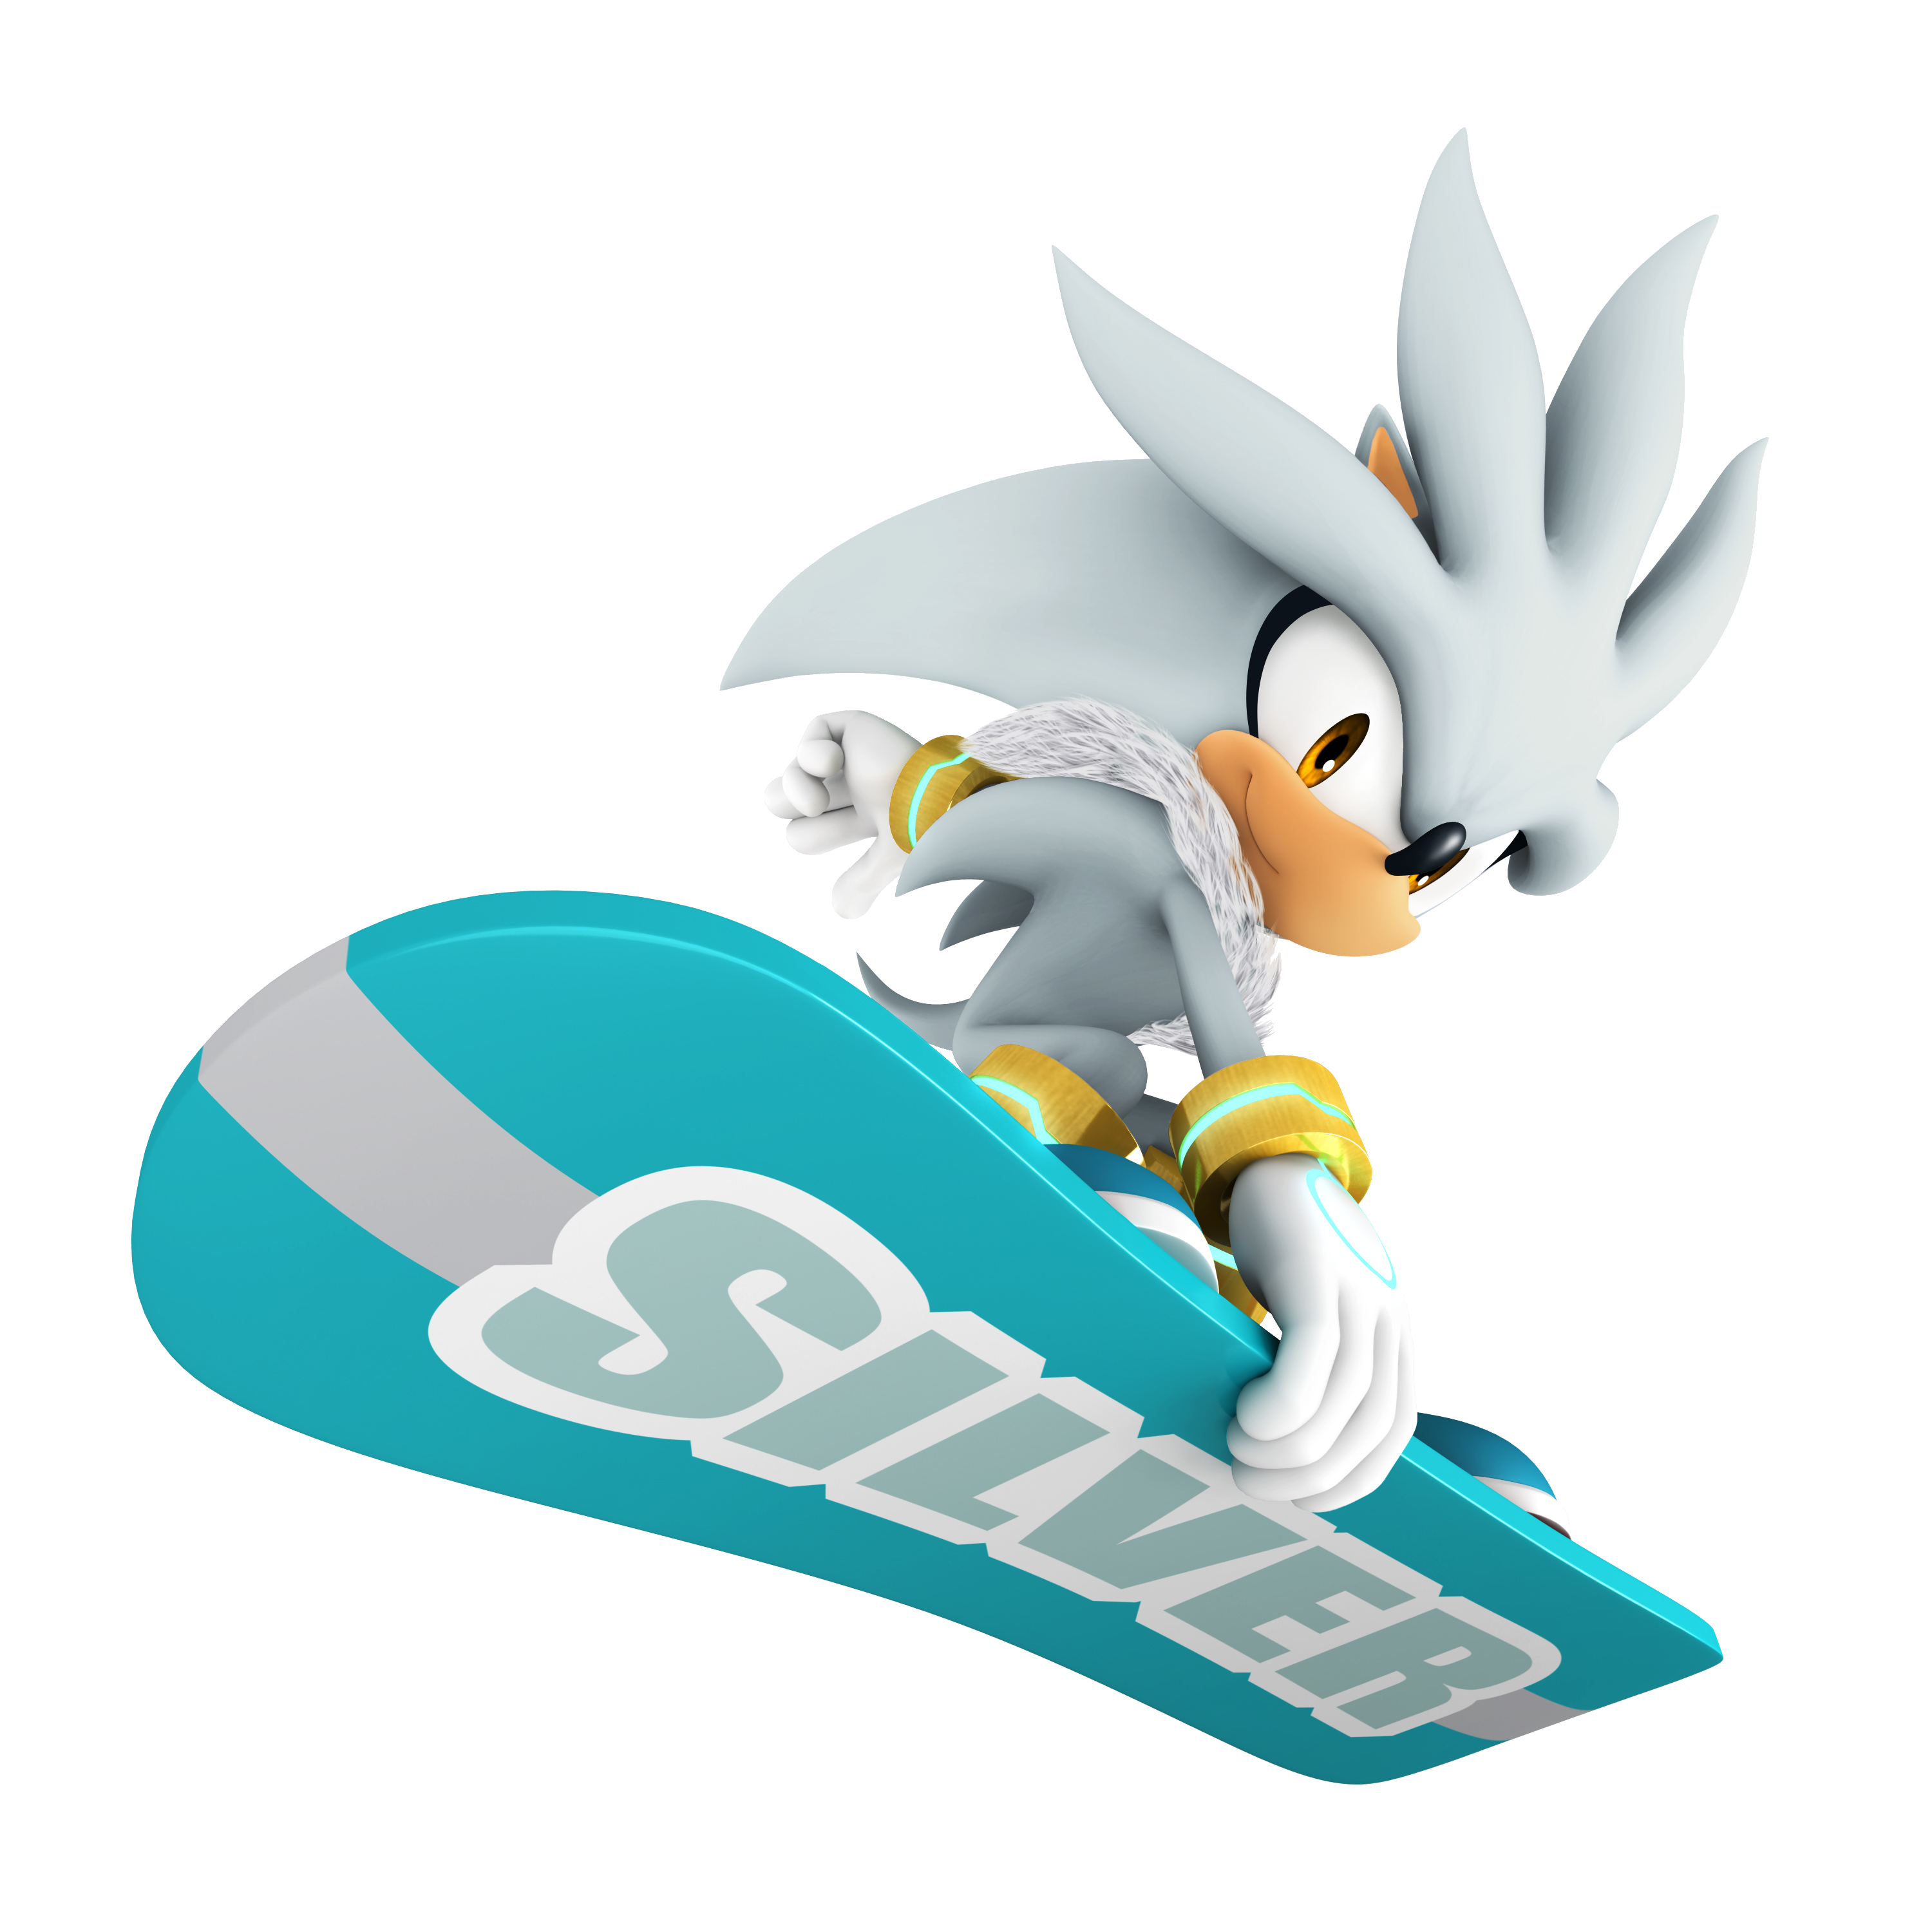 Mario sonic at the. Hedgehog clipart winter